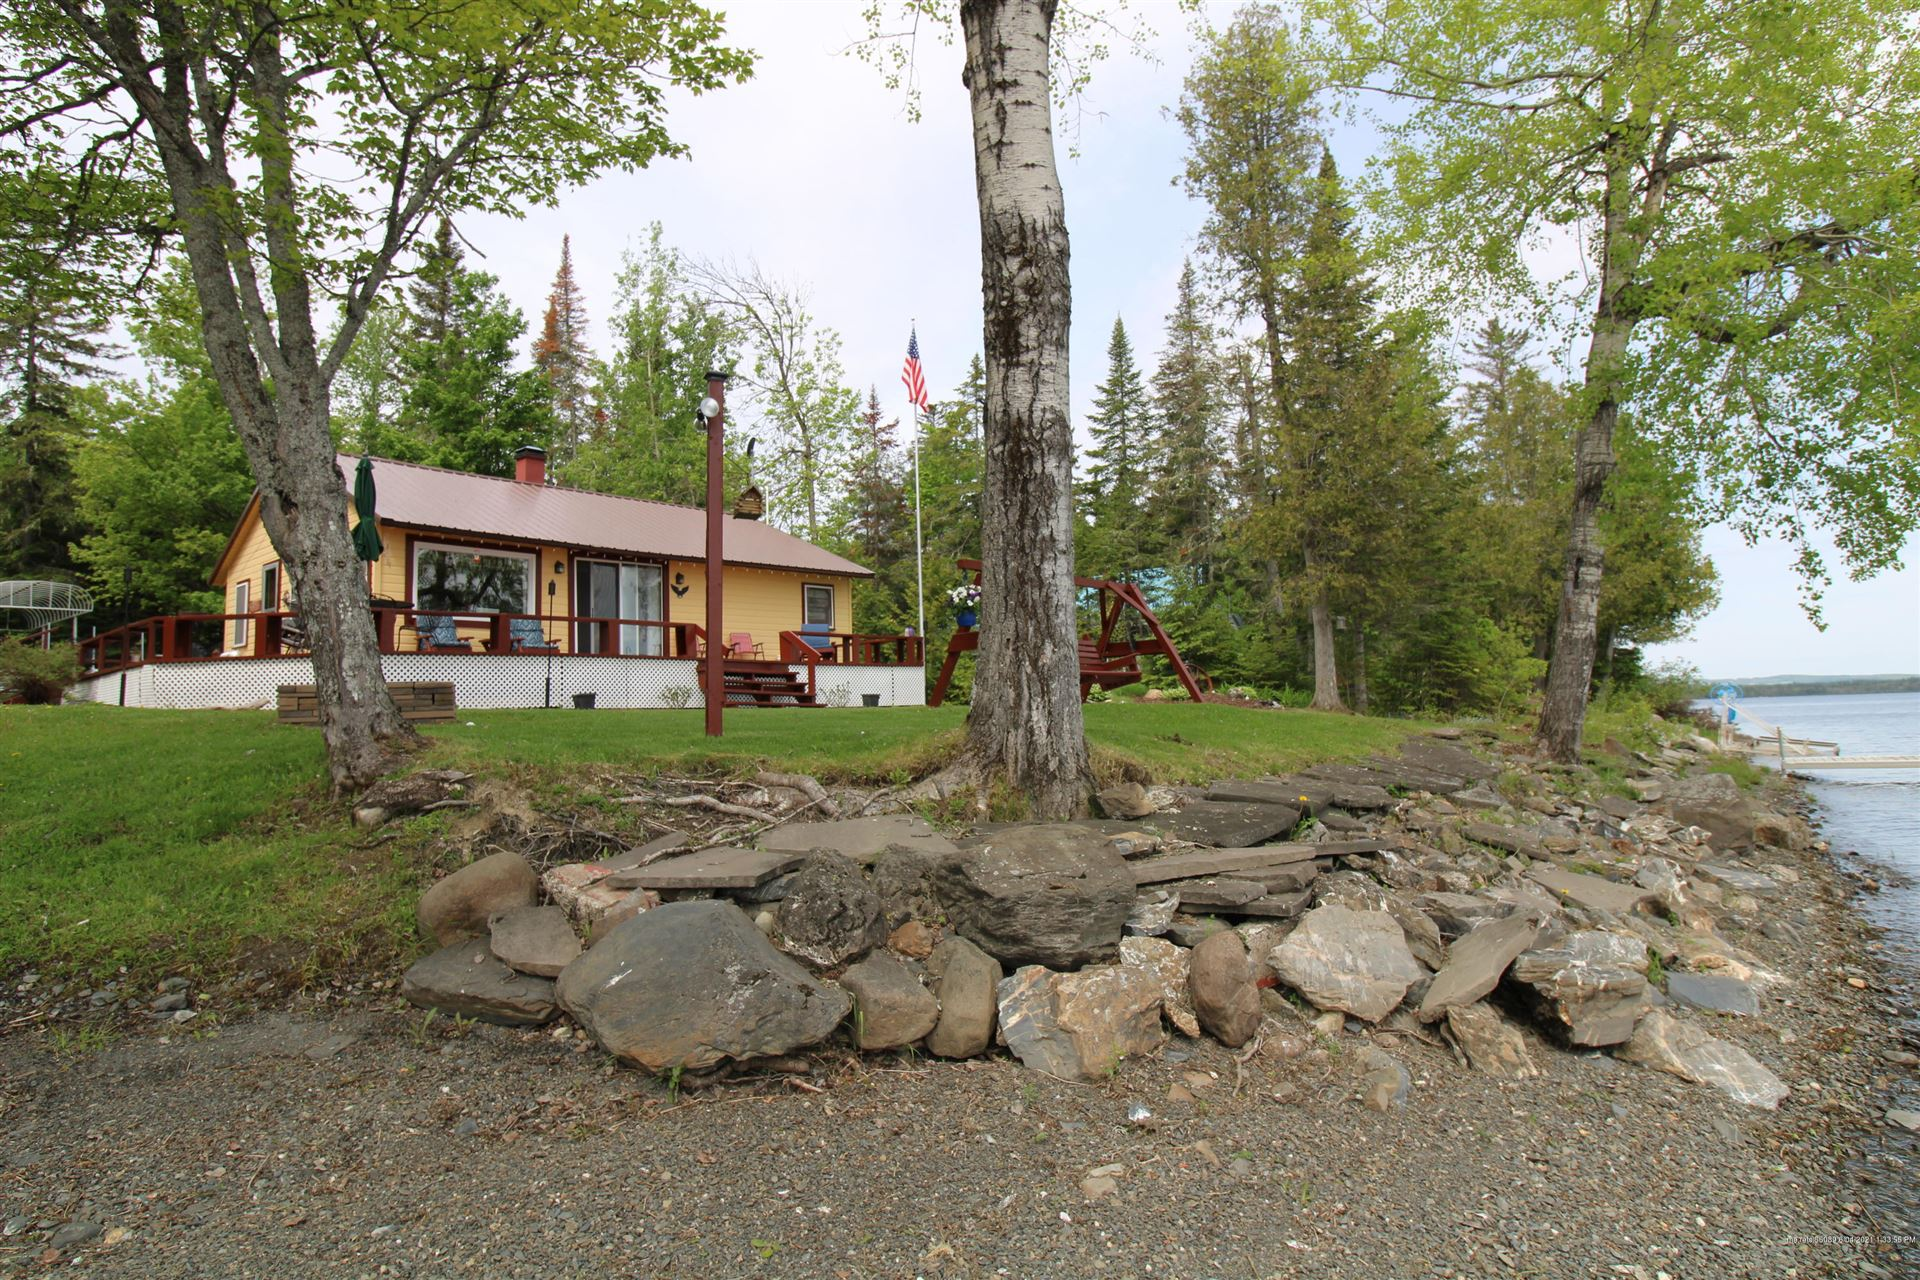 Photo of 498 West Side Road, Cross Lake Township, ME 04779 (MLS # 1494651)